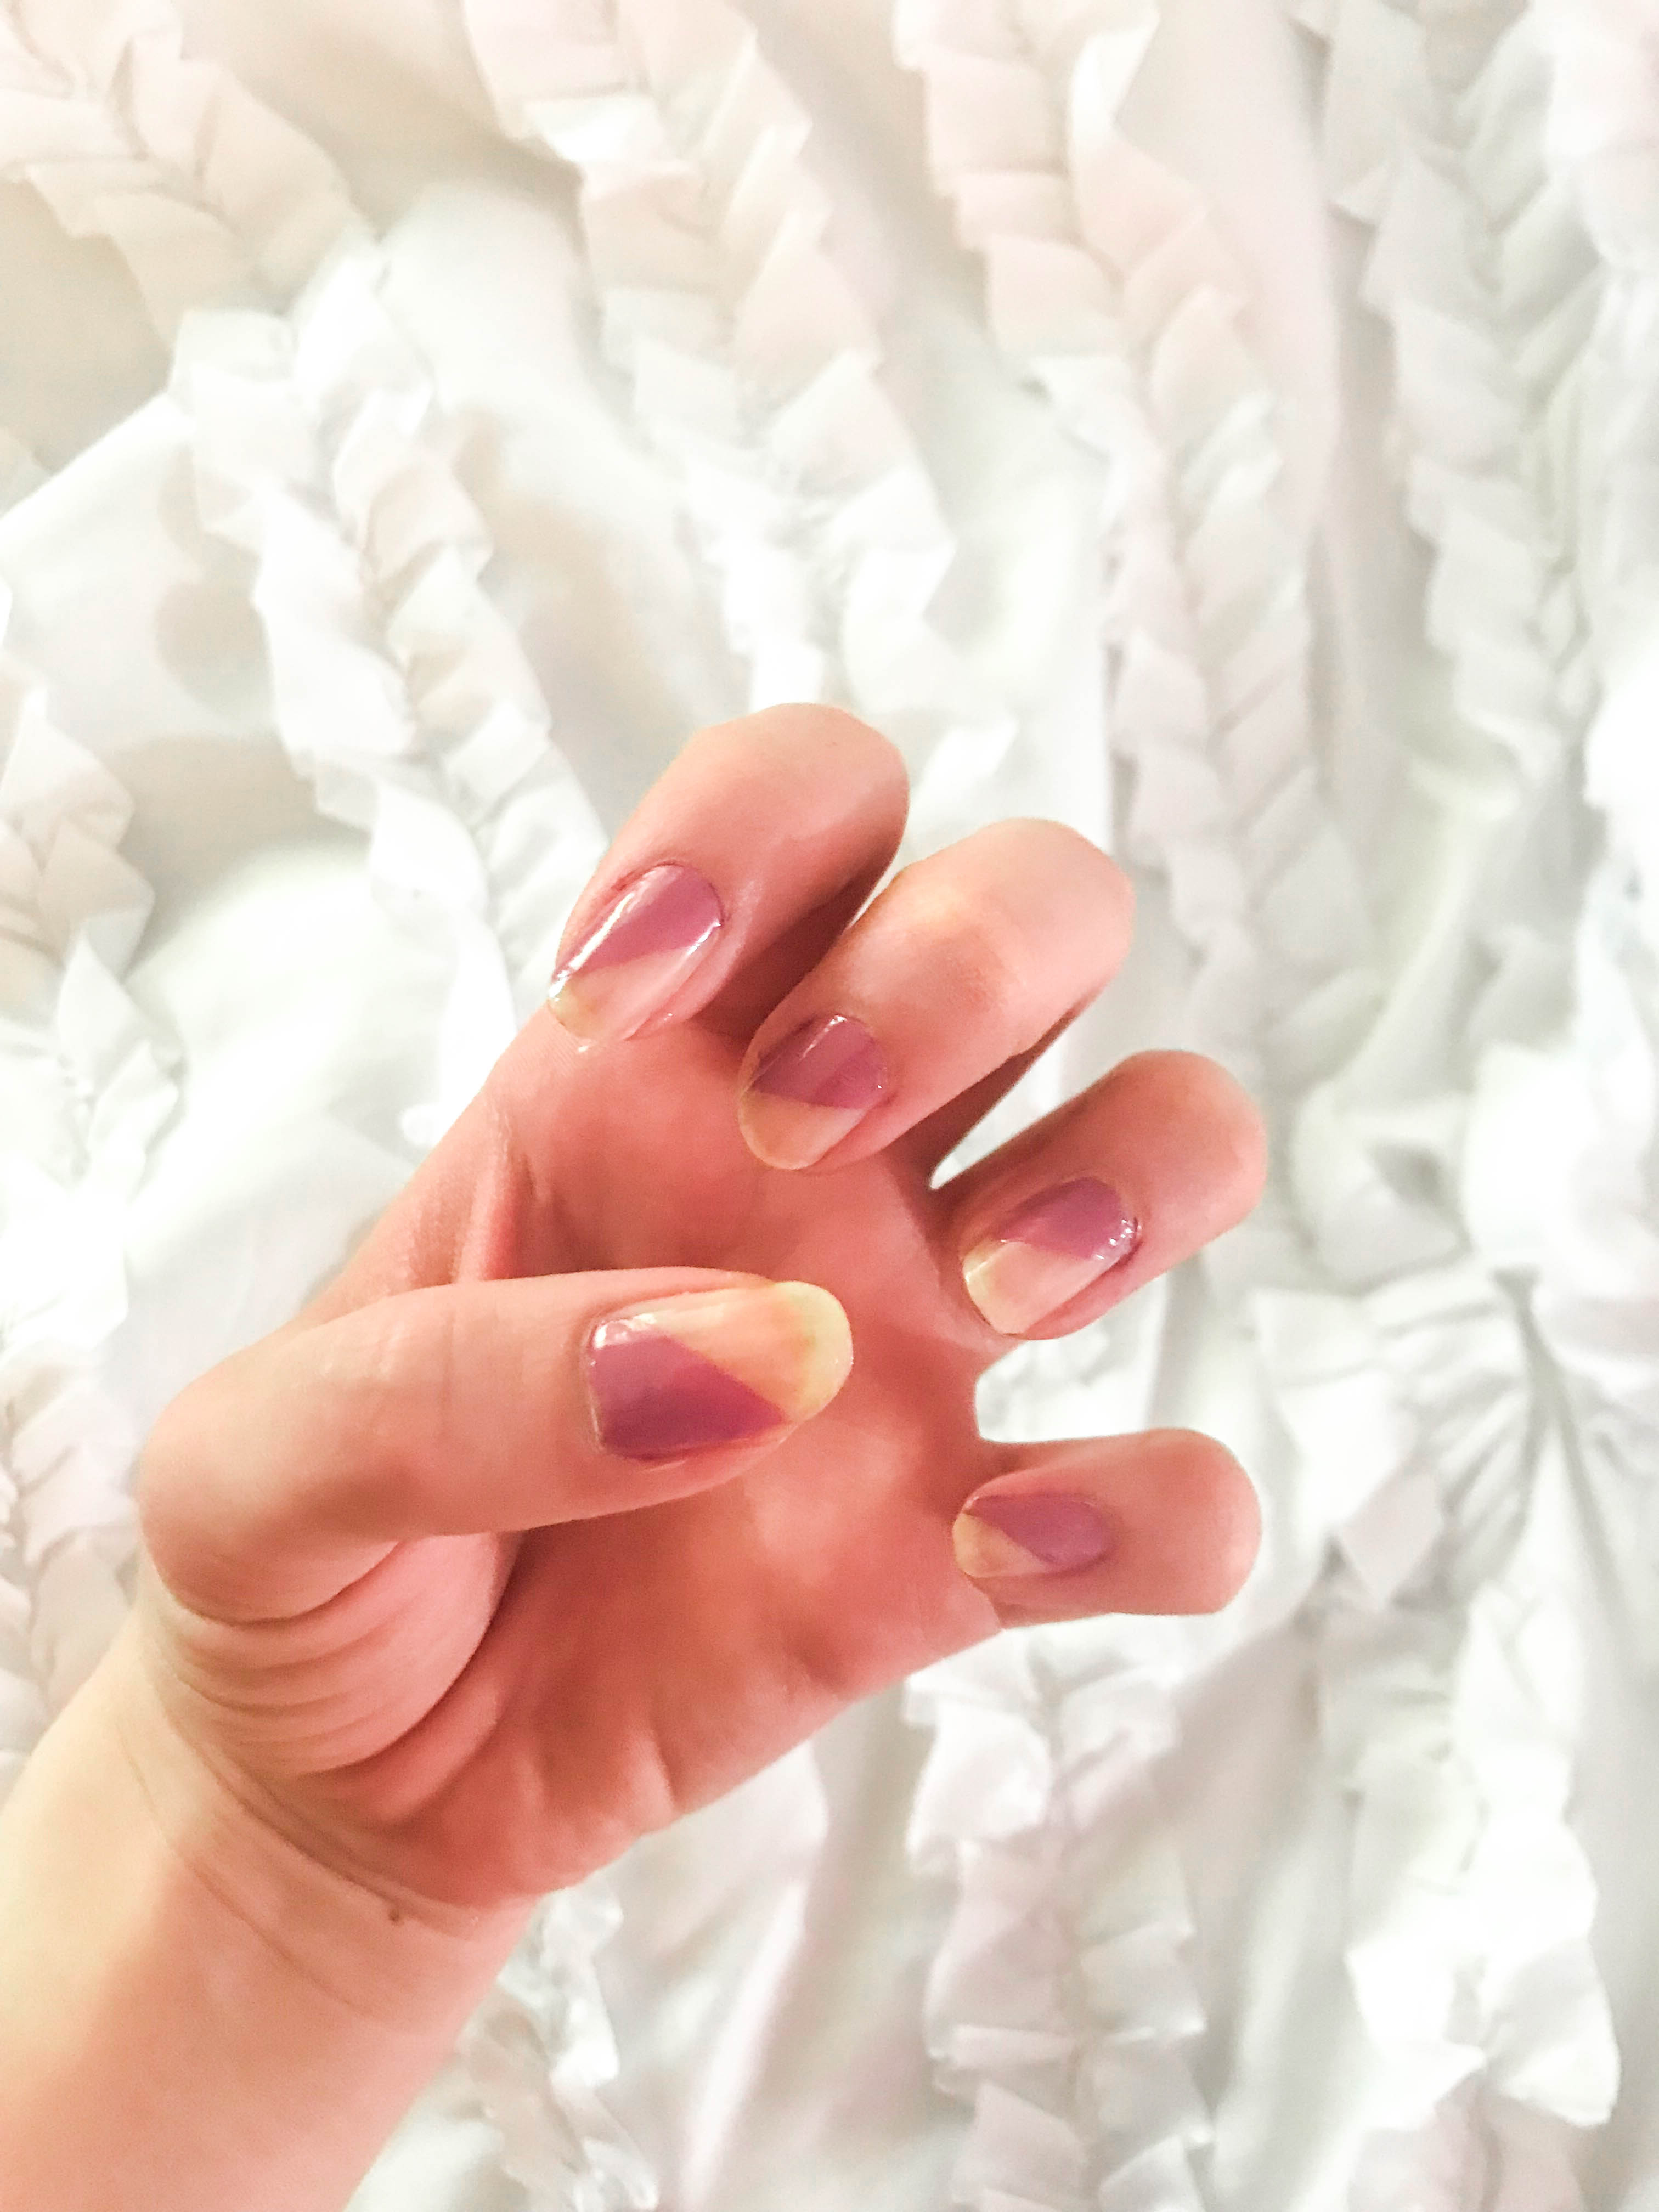 minimalist french manicure christian louboutin nail polish sweet charity easy beauty tutorial quick nail art for beginners light sheer nail polish deborah lippmann opi nail hacks sweet charity bed of roses alpine snow